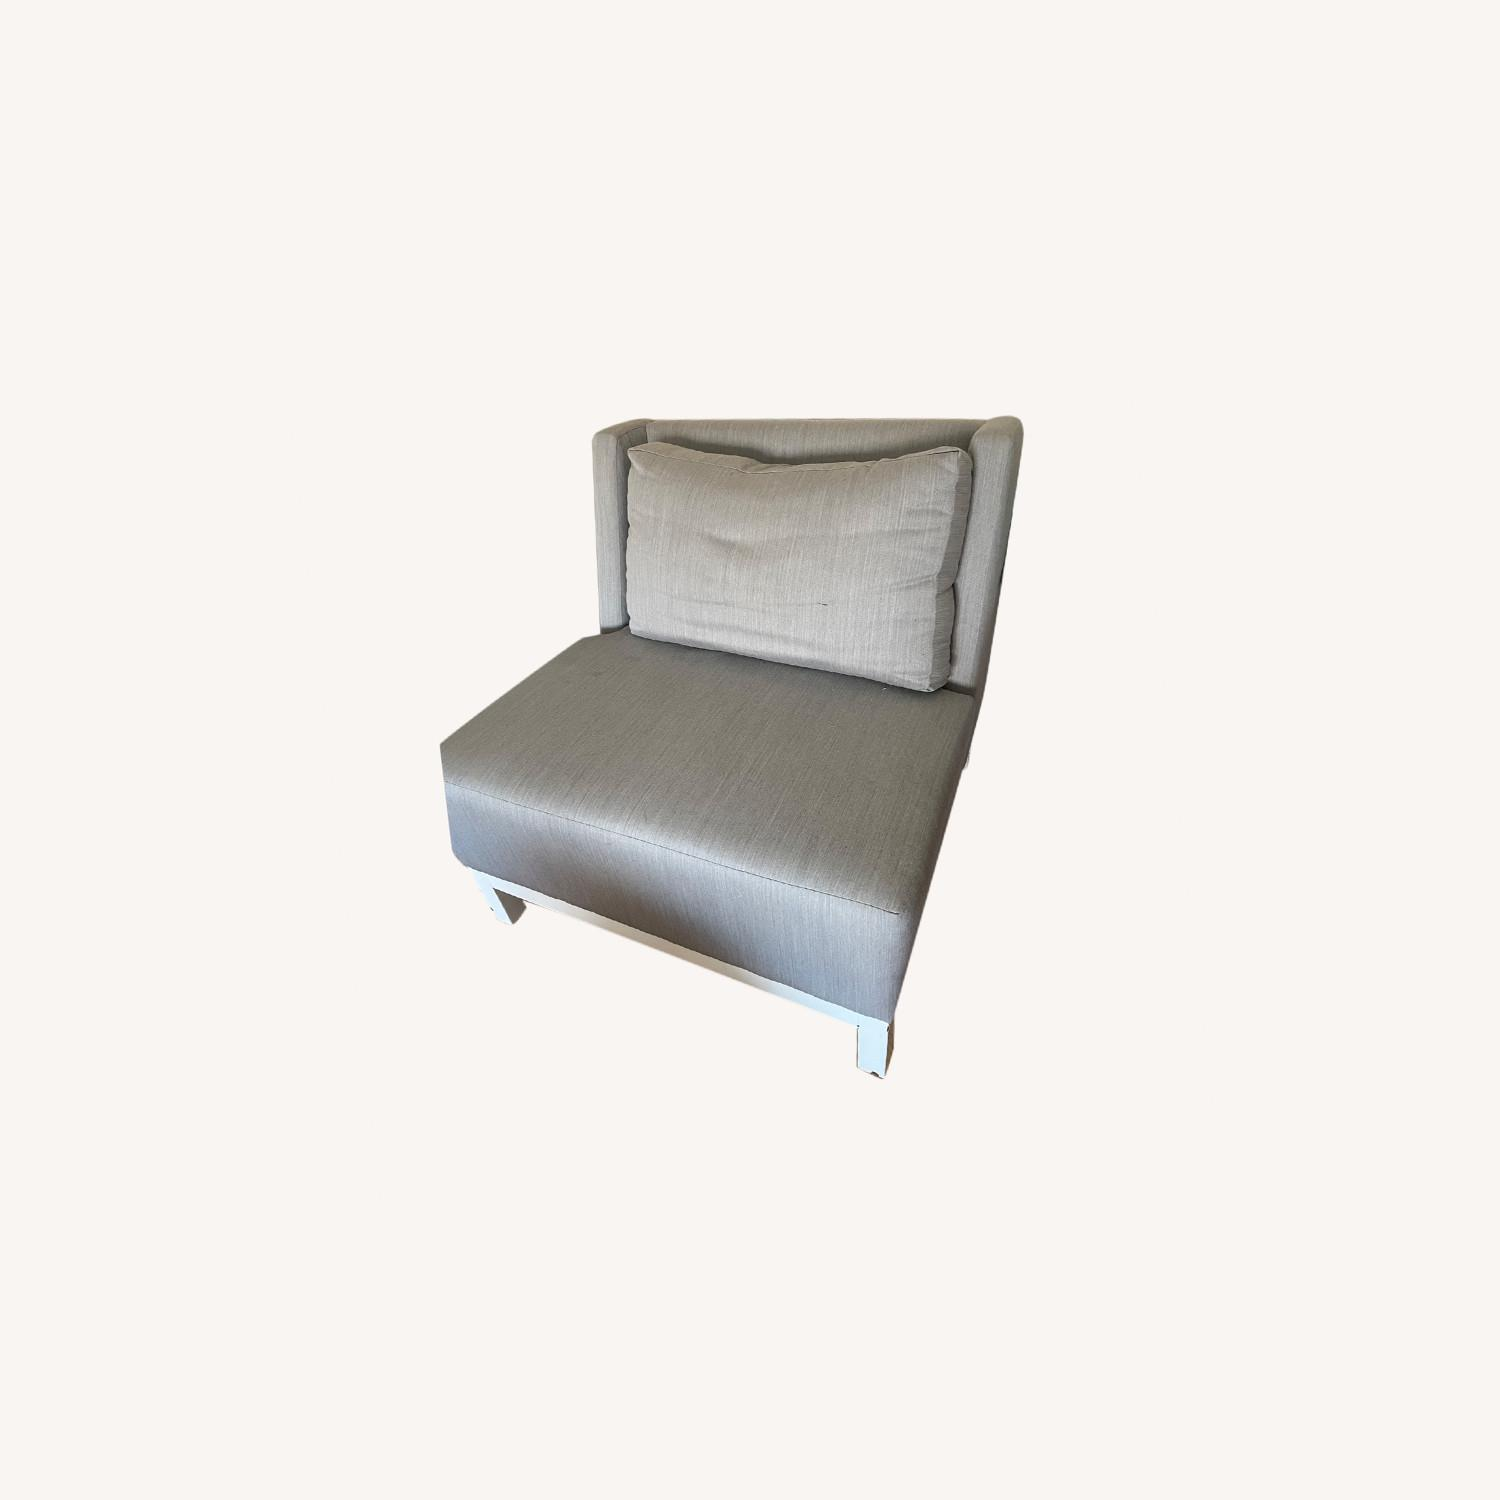 Silver/Gray Accent Chair - image-0